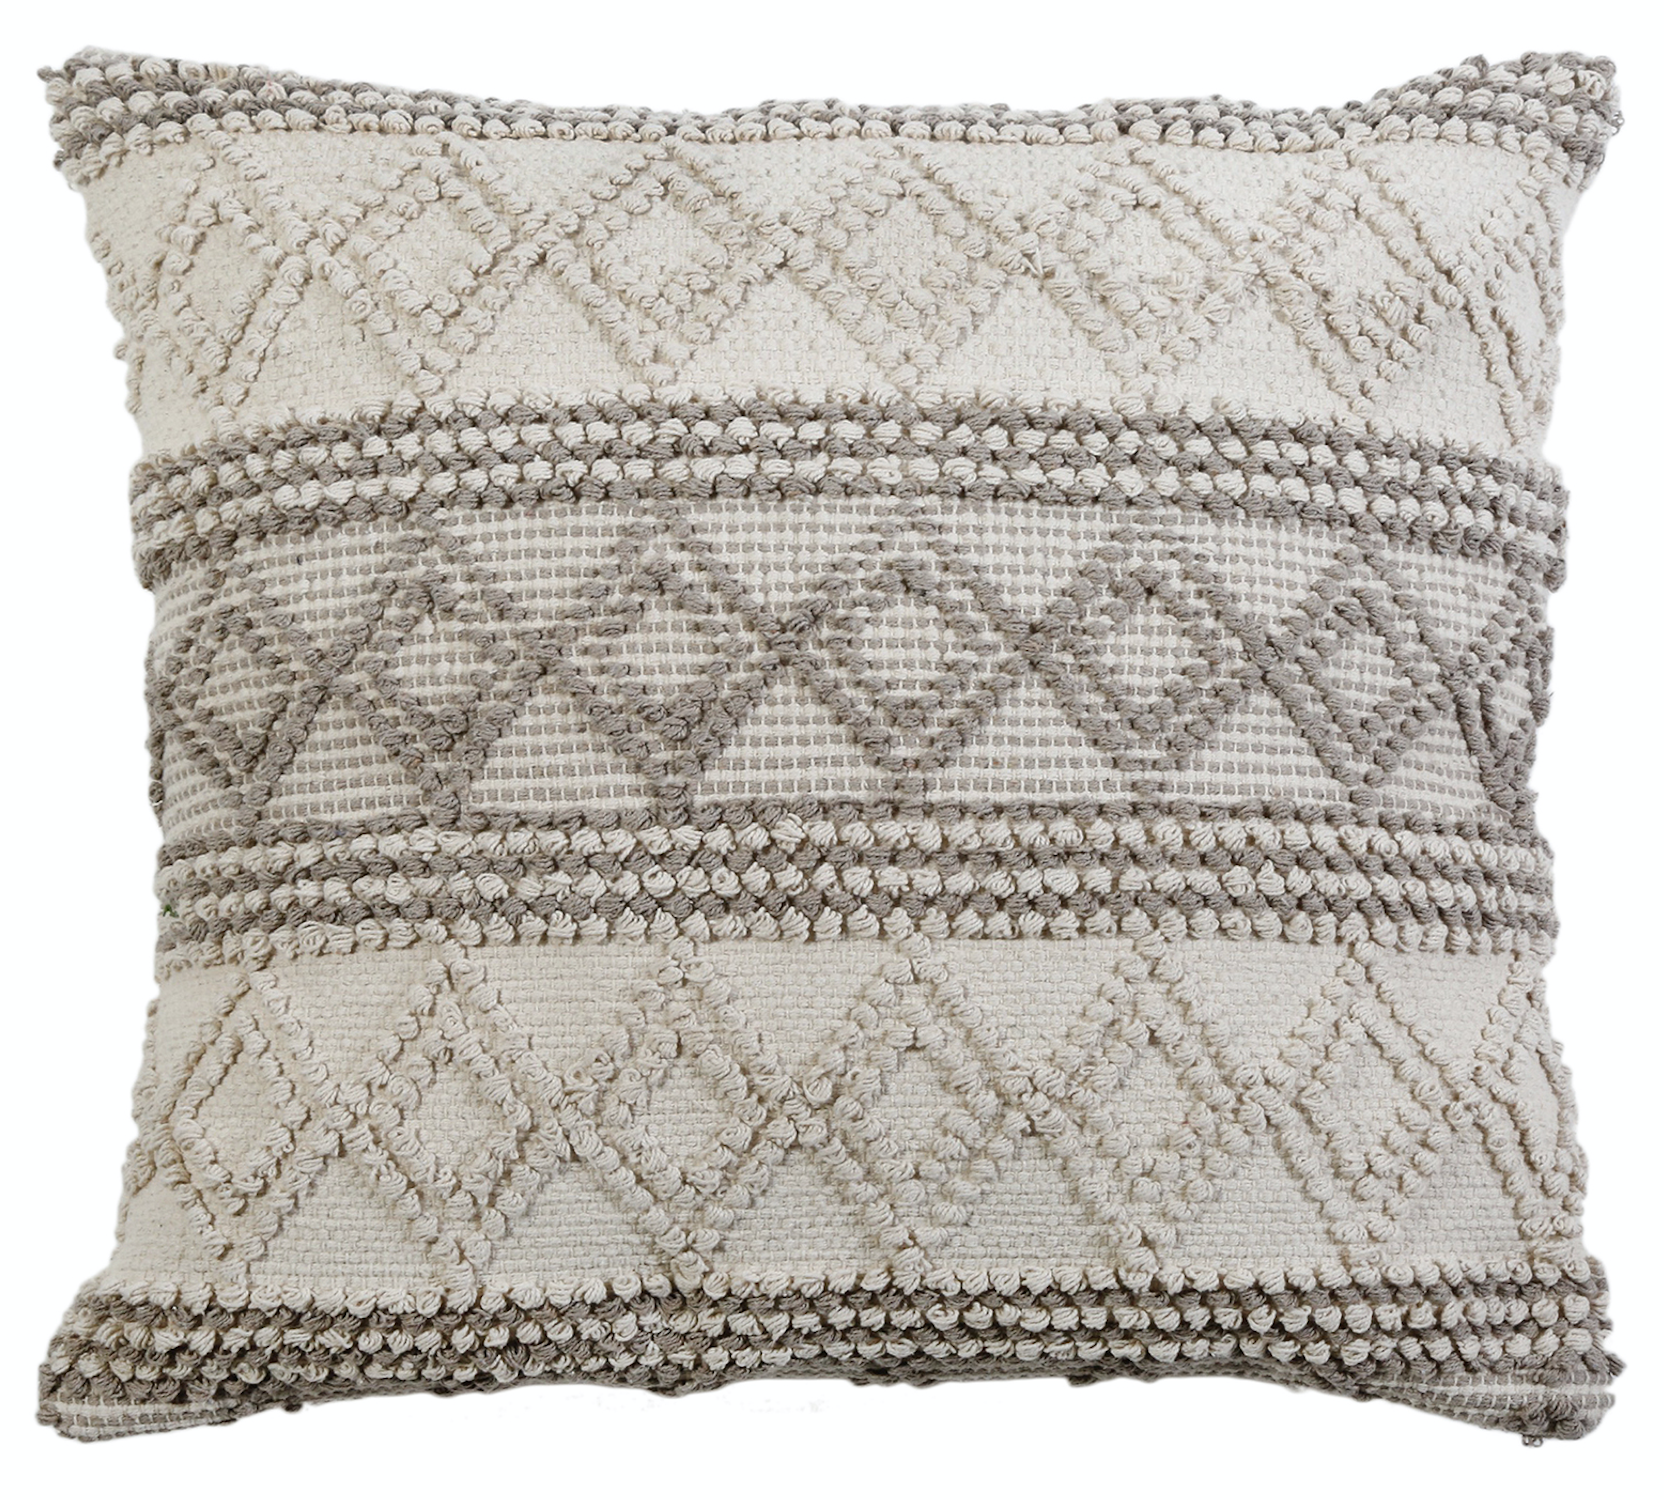 a handwoven square pillow, taupe and grey